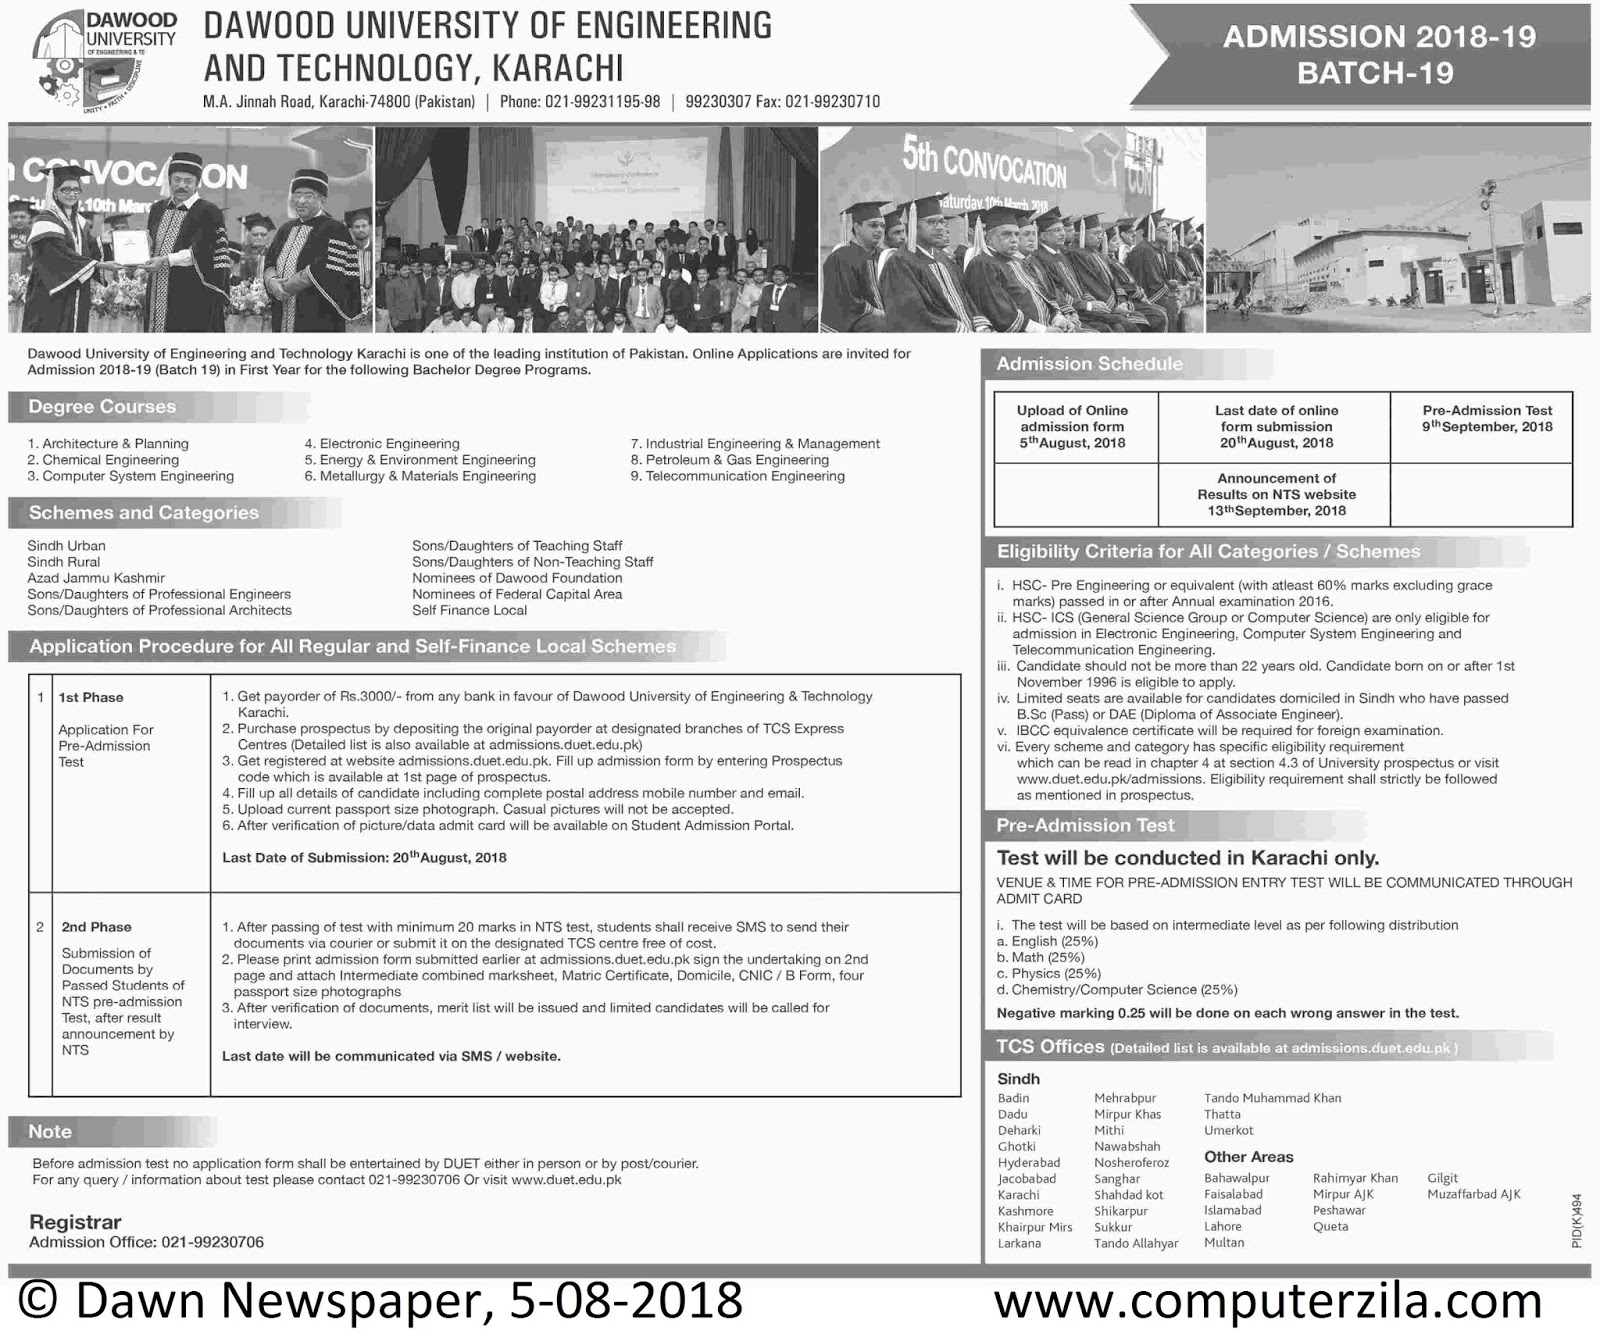 Admissions Open For Fall 2018 At DUET Karachi Campus